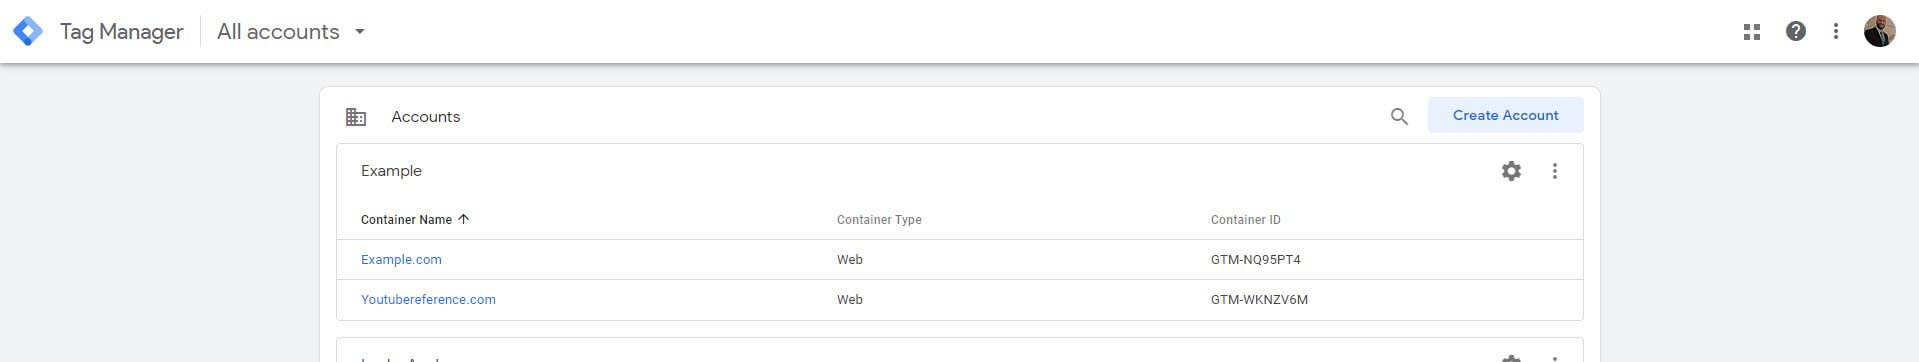 Google Tag Manager Access